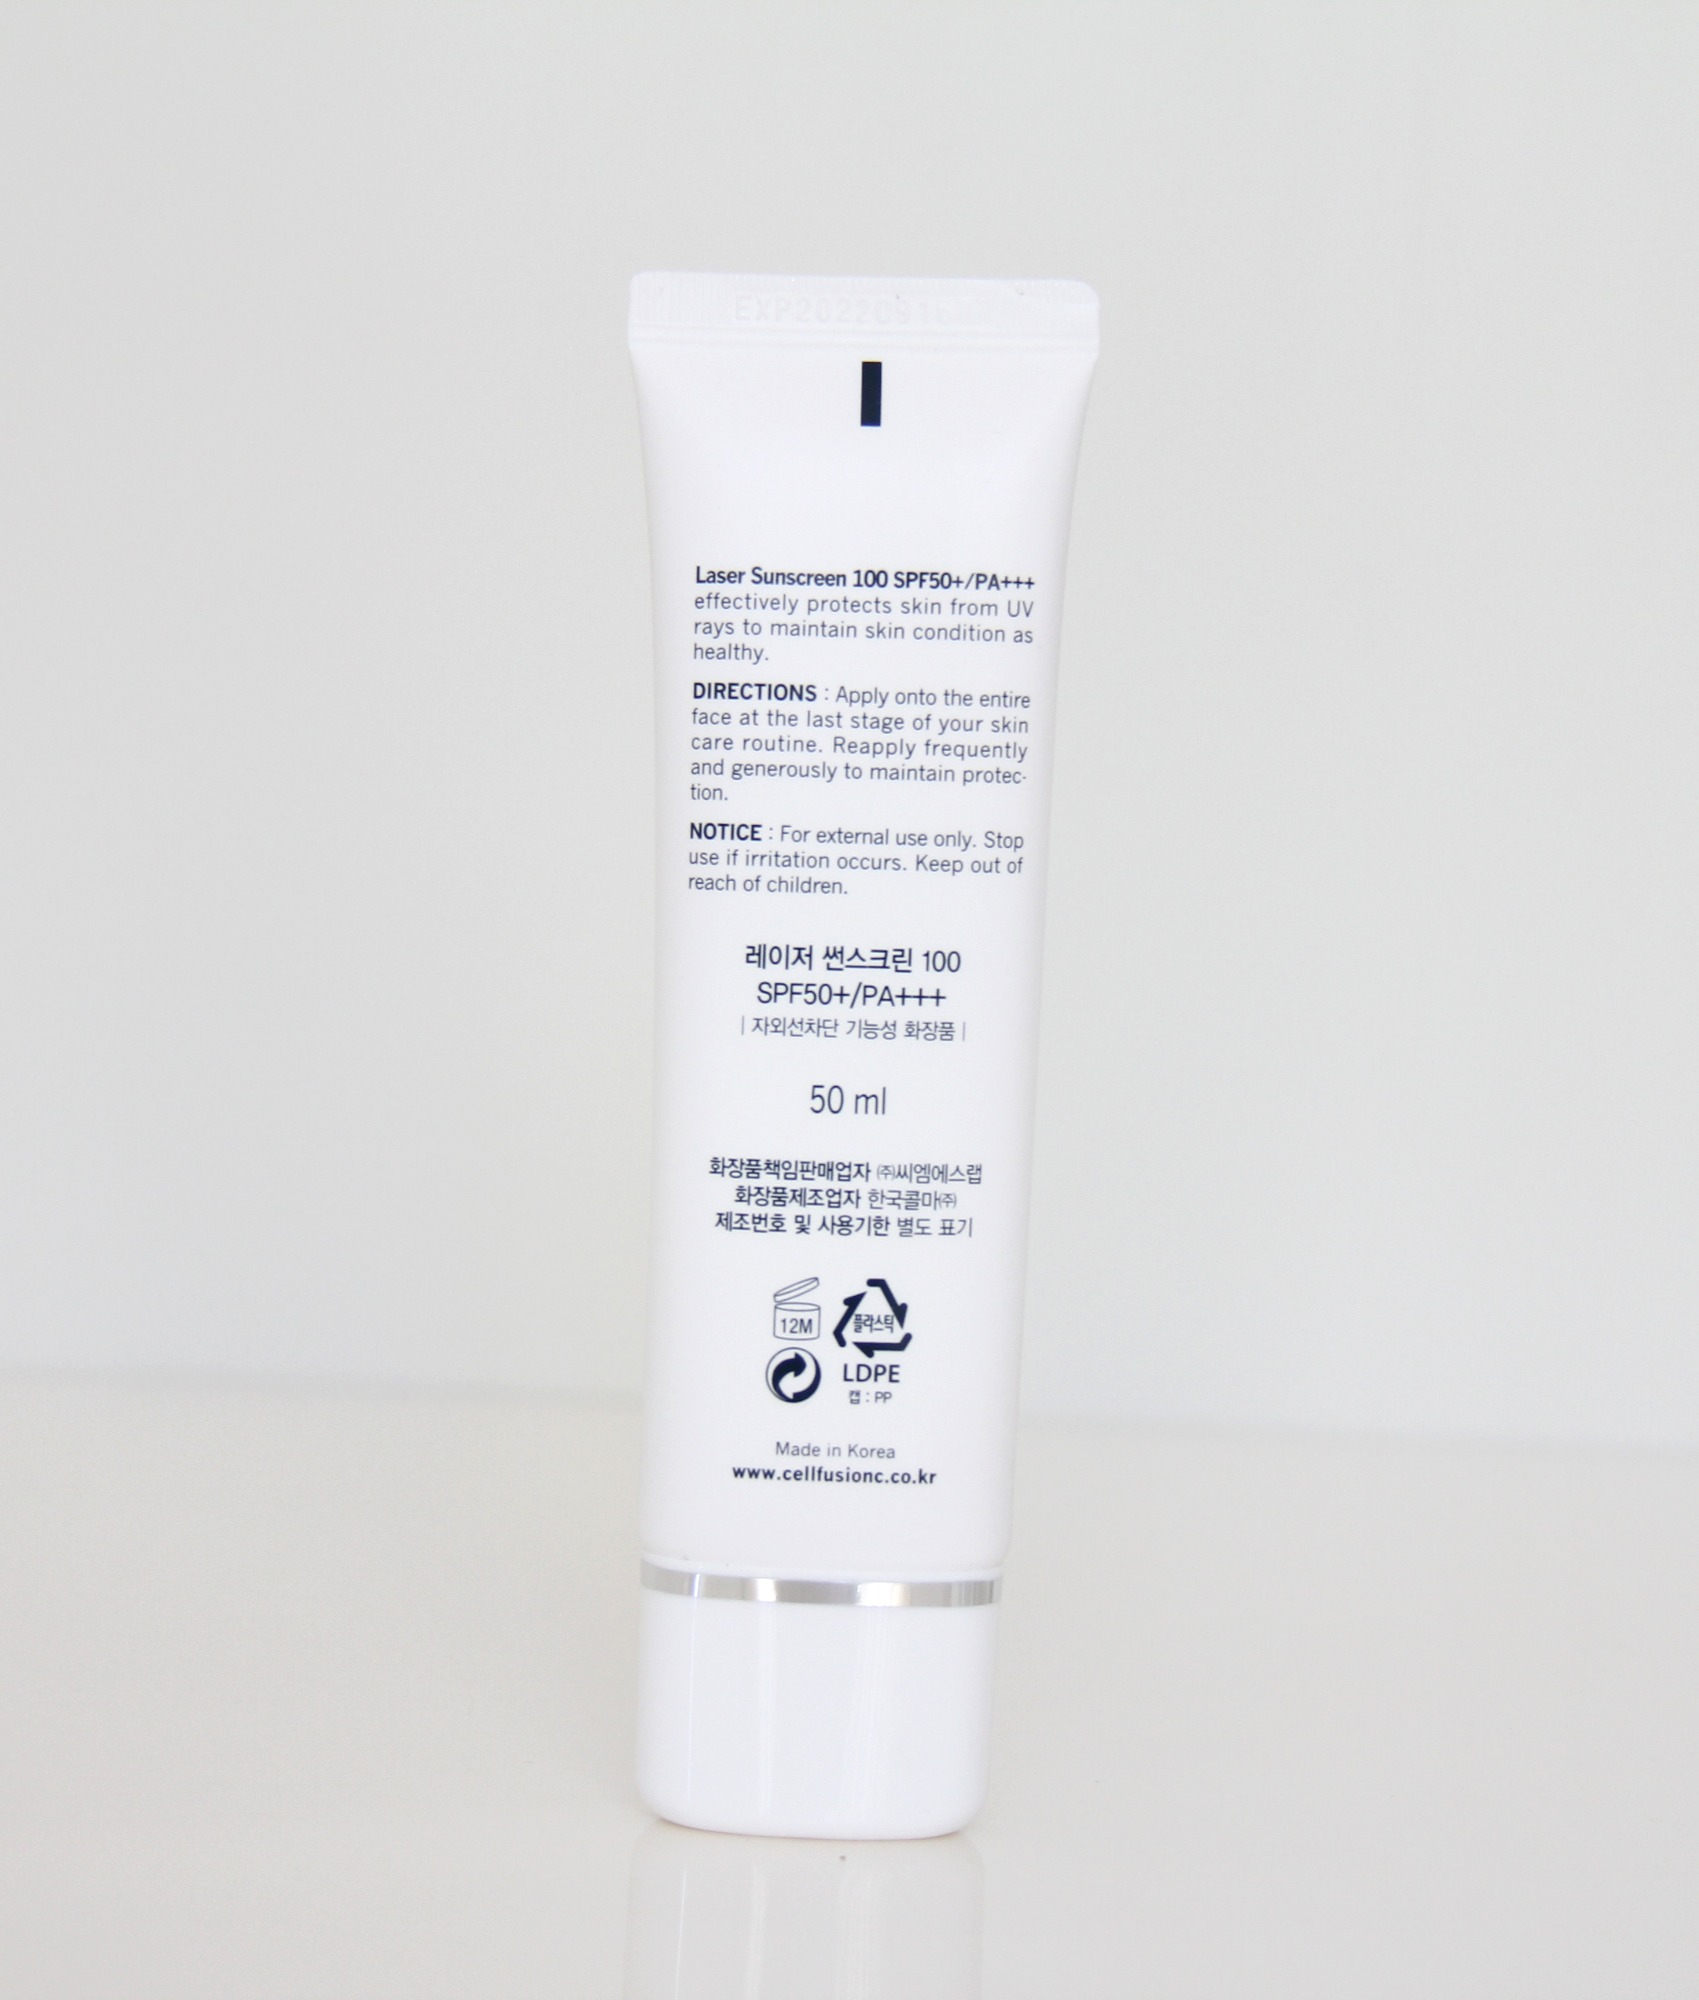 Cell Fusion C Laser Sunscreen SPF50+